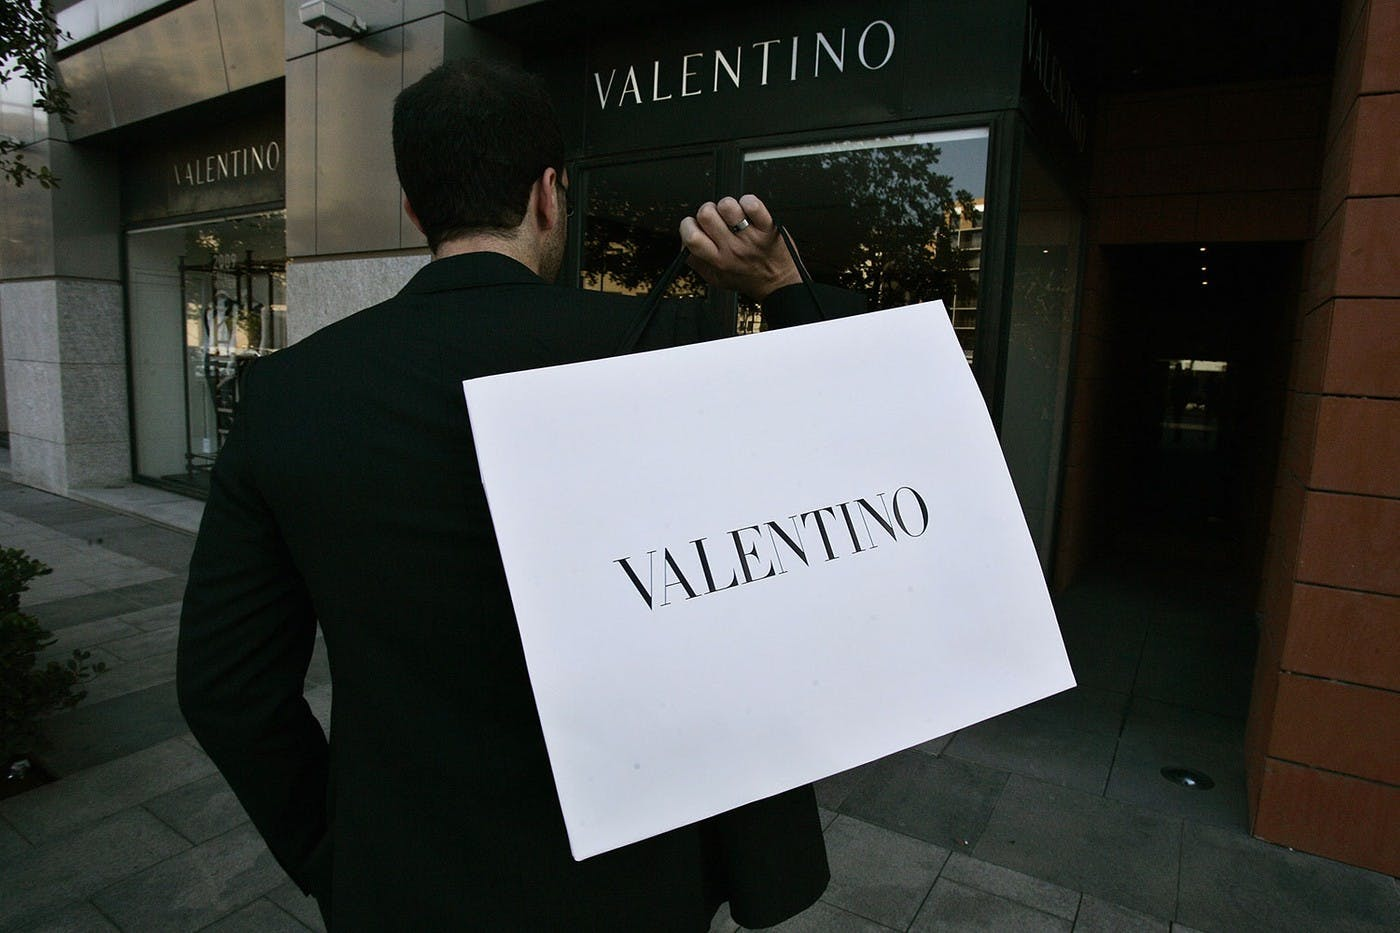 VALENTINO AND AMAZON JOIN IN A LAWSUIT OVER COUNTERFEIT